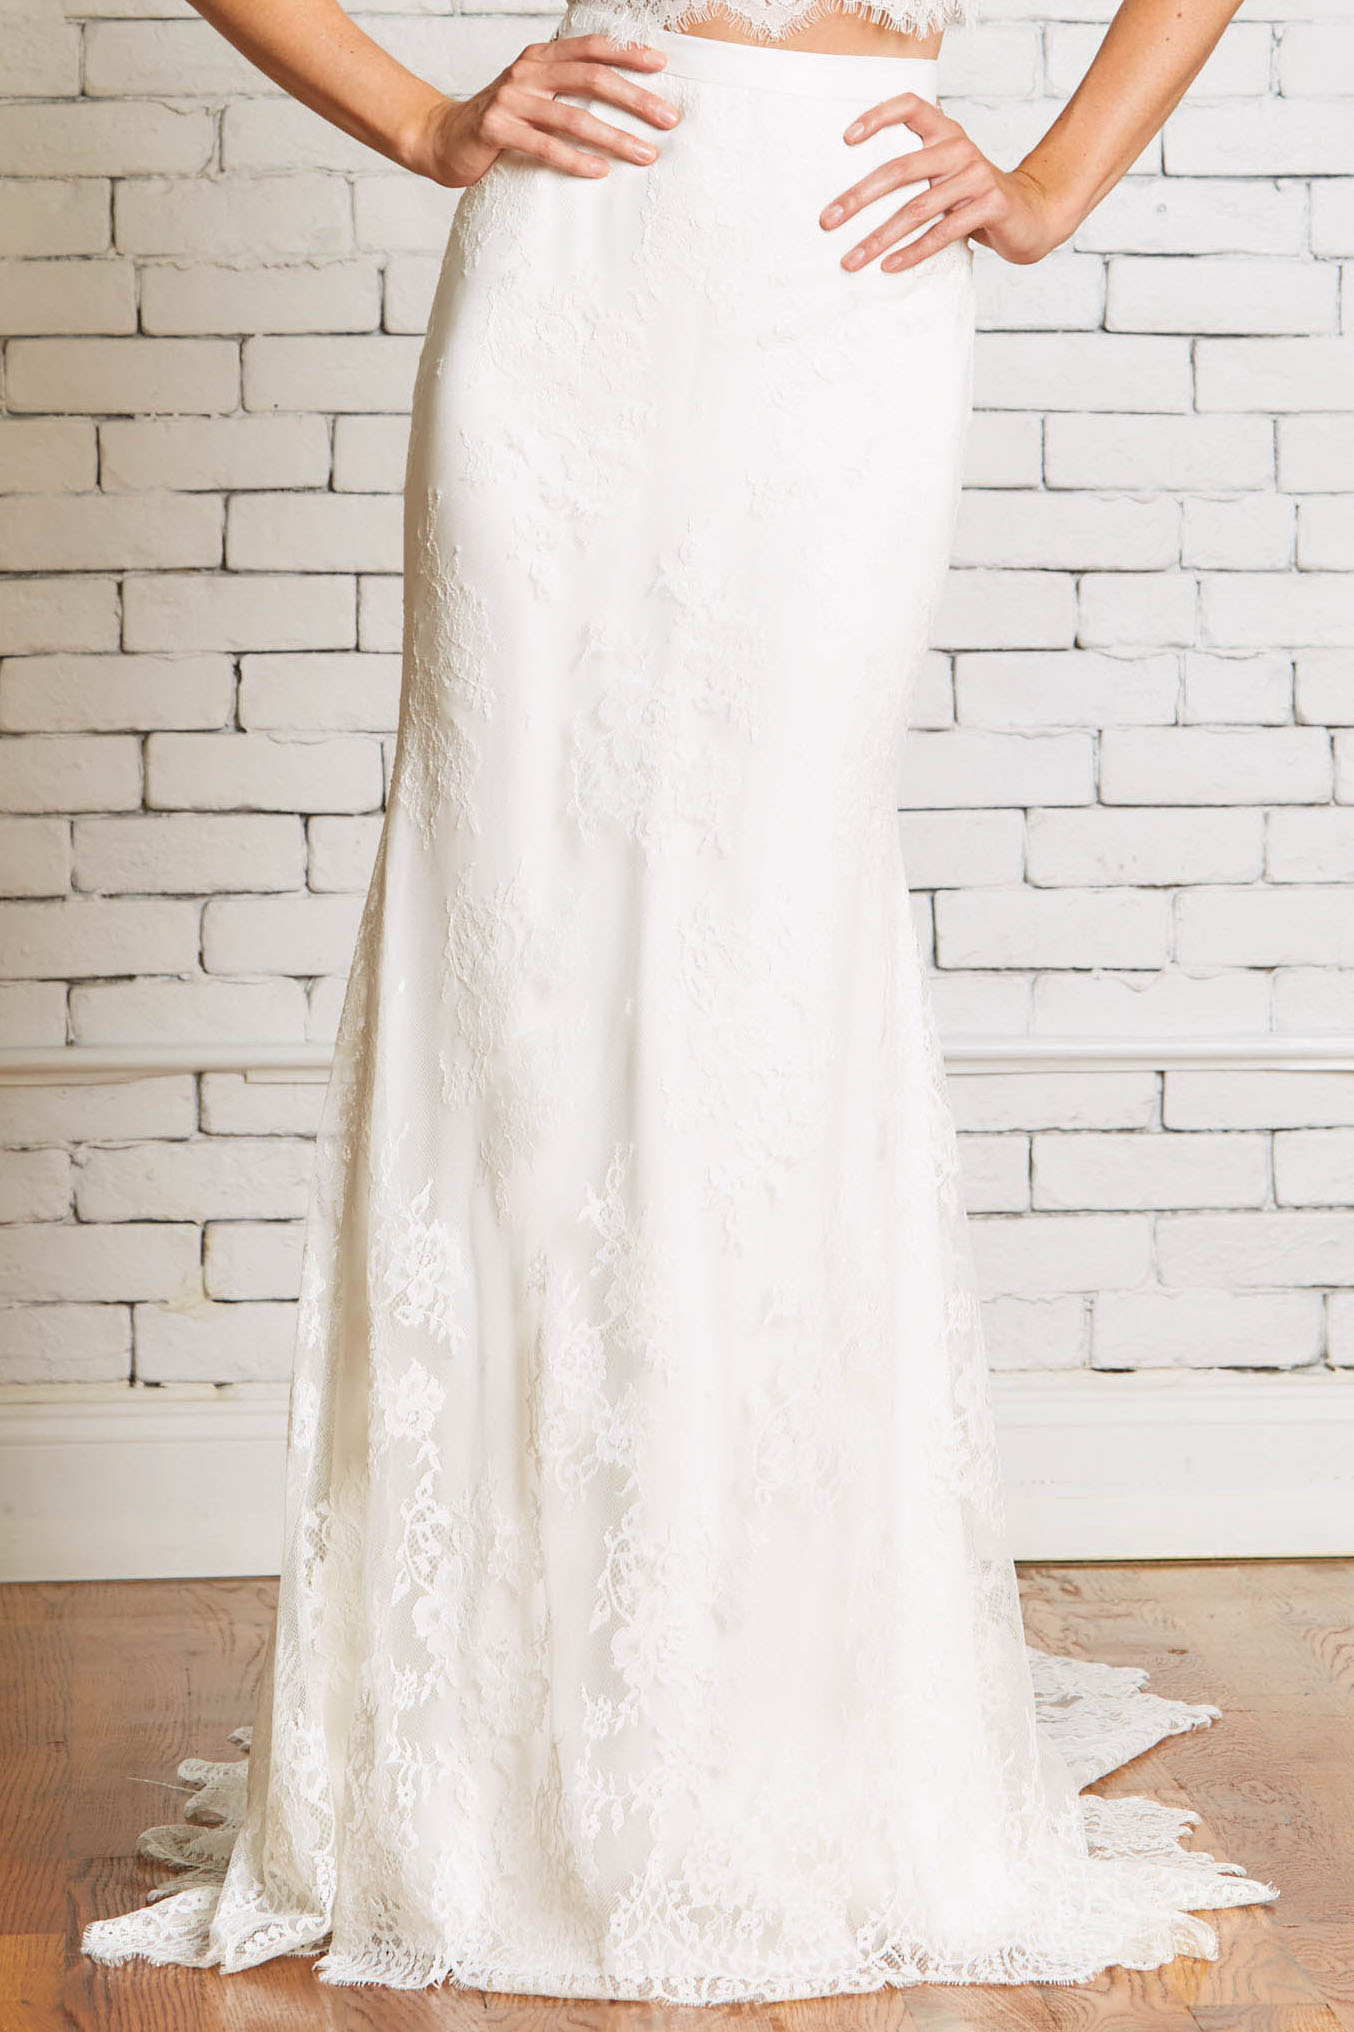 5c.Rebecca_Schoneveld_Shannon_Skirt-Bridal_Separate_Lace_Fit-and_Flare_Chic.jpg